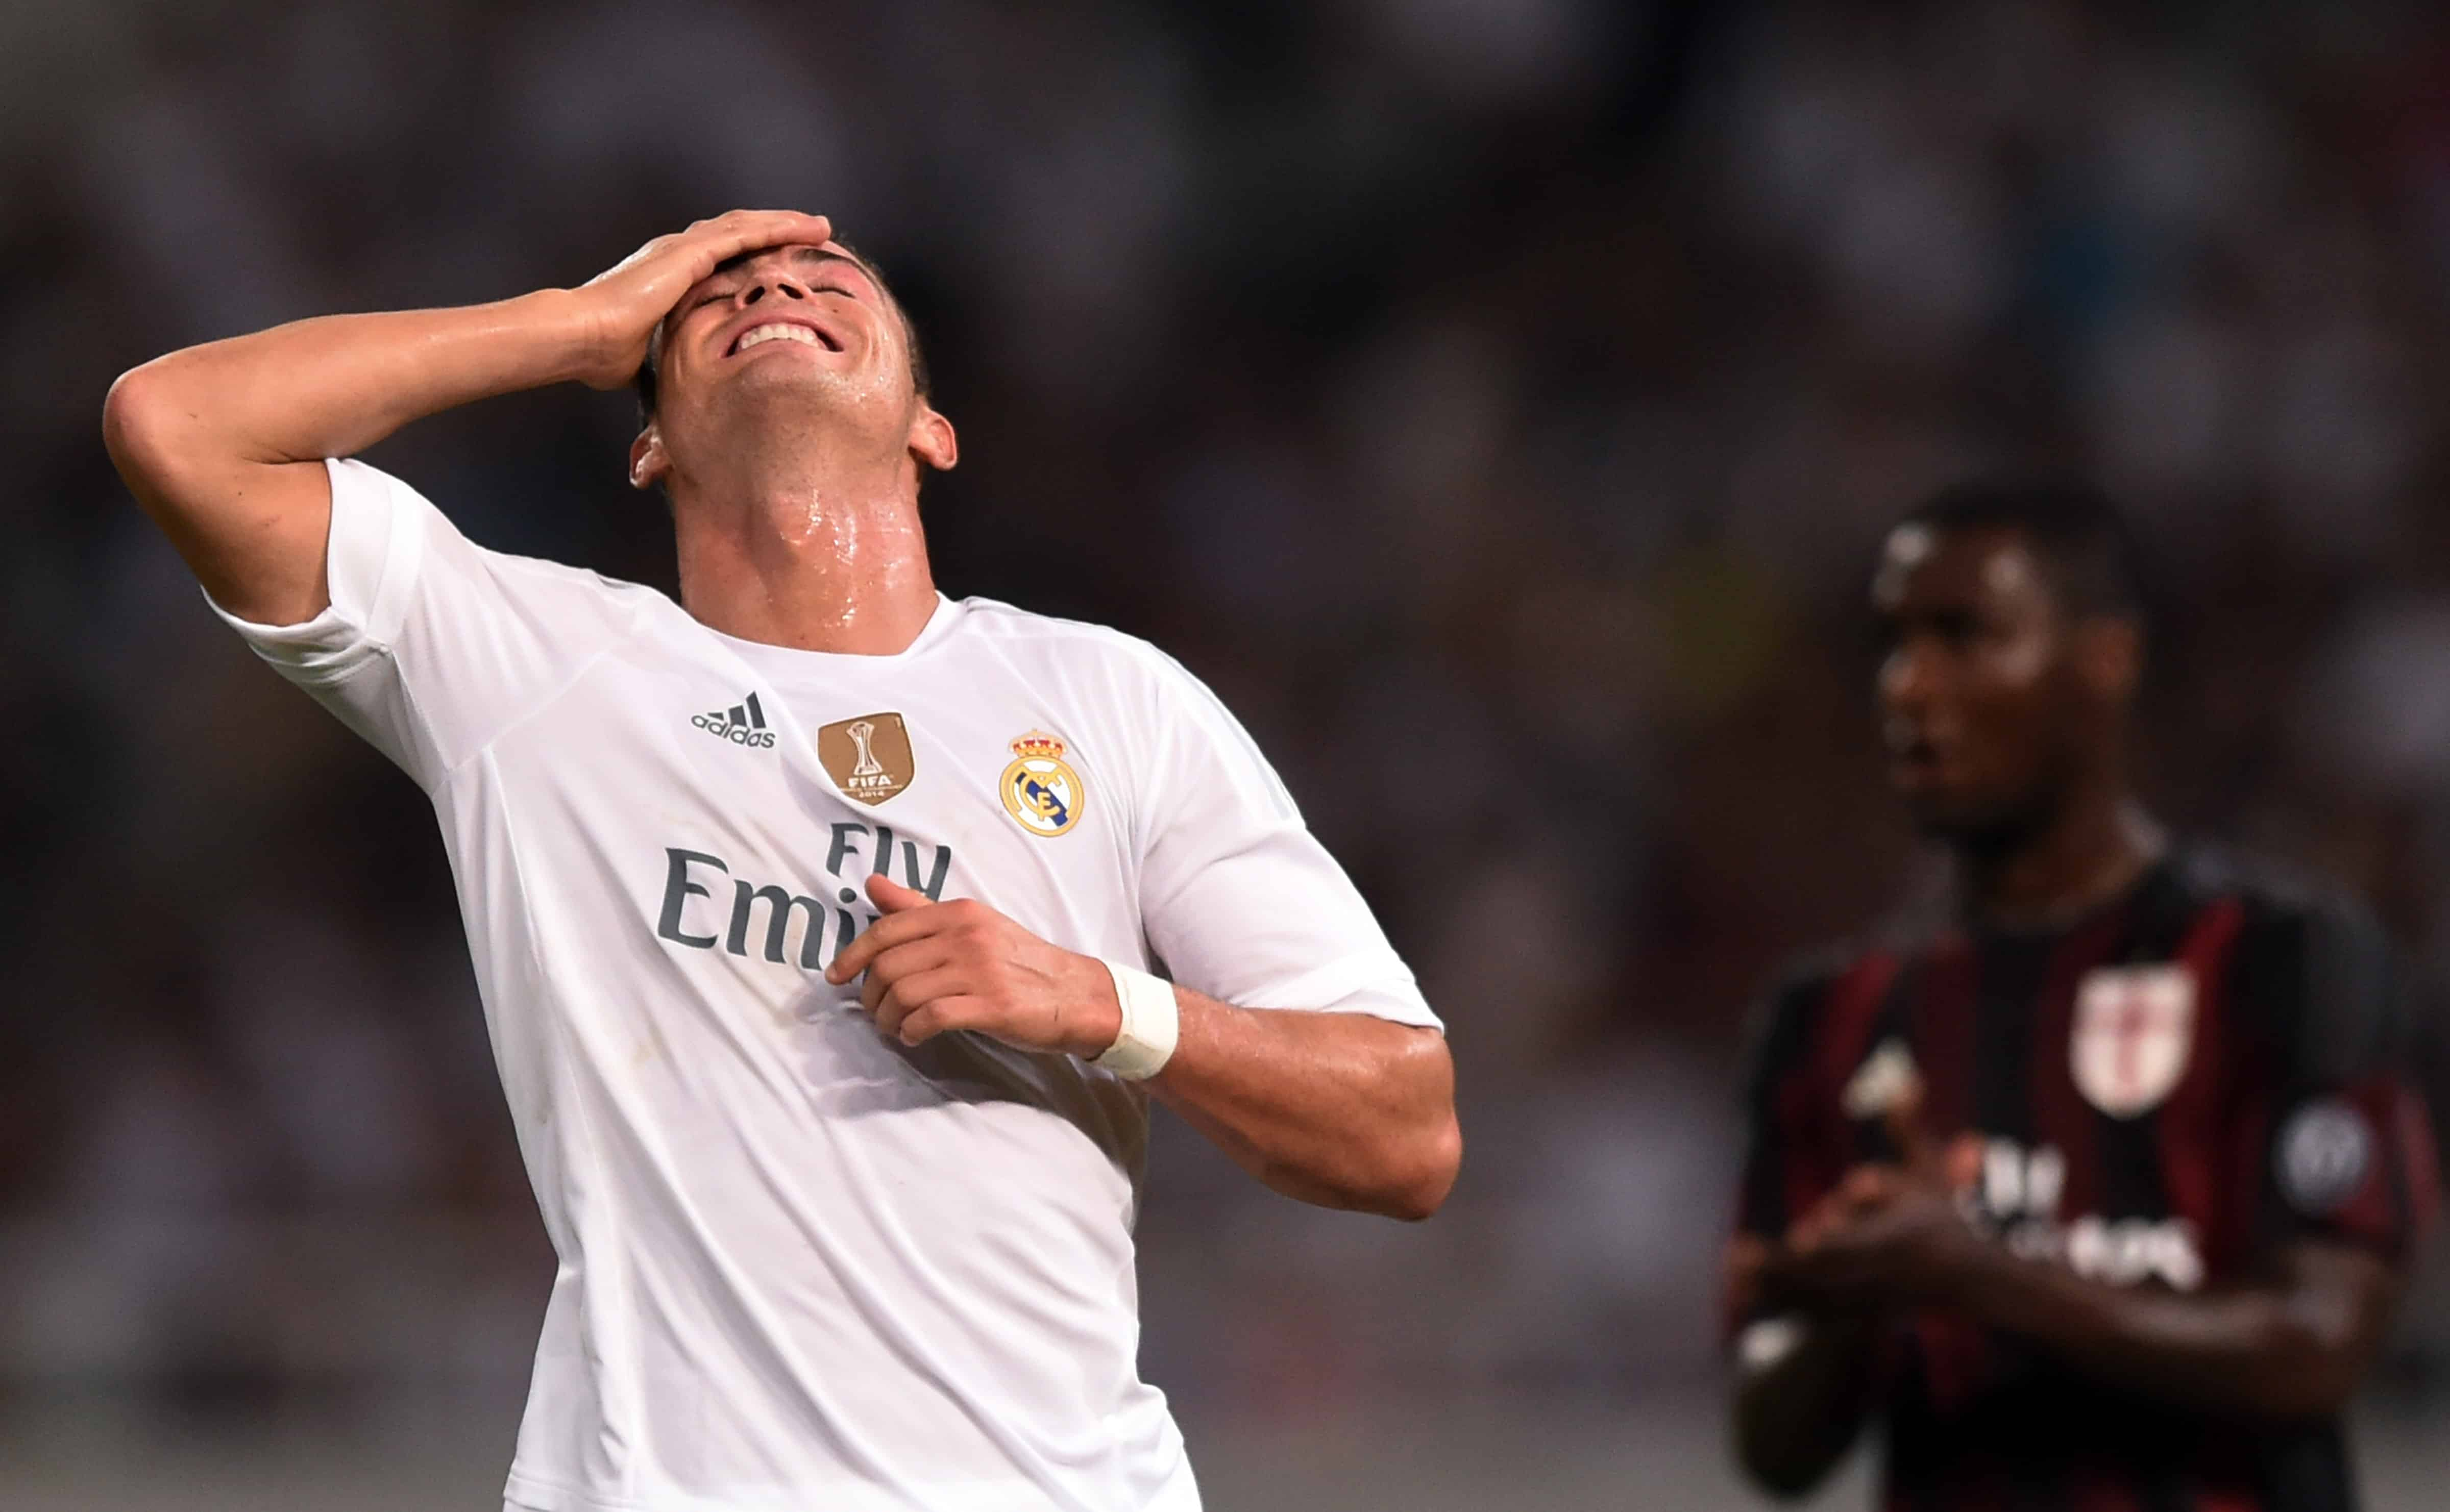 Real Madrid's Cristiano Ronaldo reacts during the International Champions Cup football match between AC Milan and Real Madrid in Shanghai on July 30, 2015.